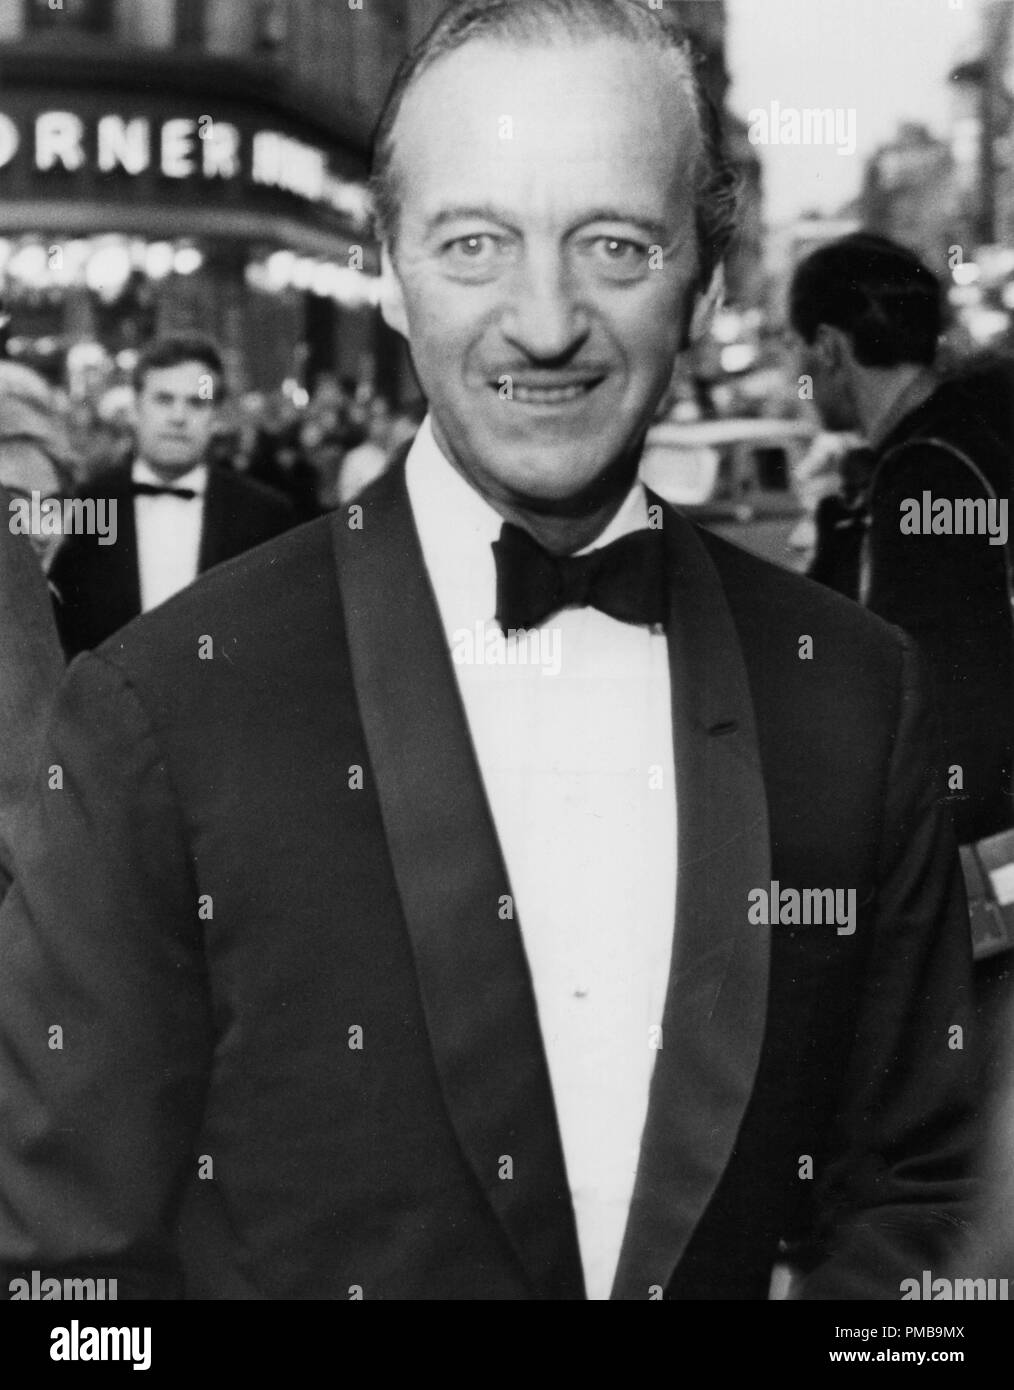 David Niven at the premiere of Barbra Streisand's stage show, 'Funny Girl'1966  File Reference # 32557_883THA - Stock Image